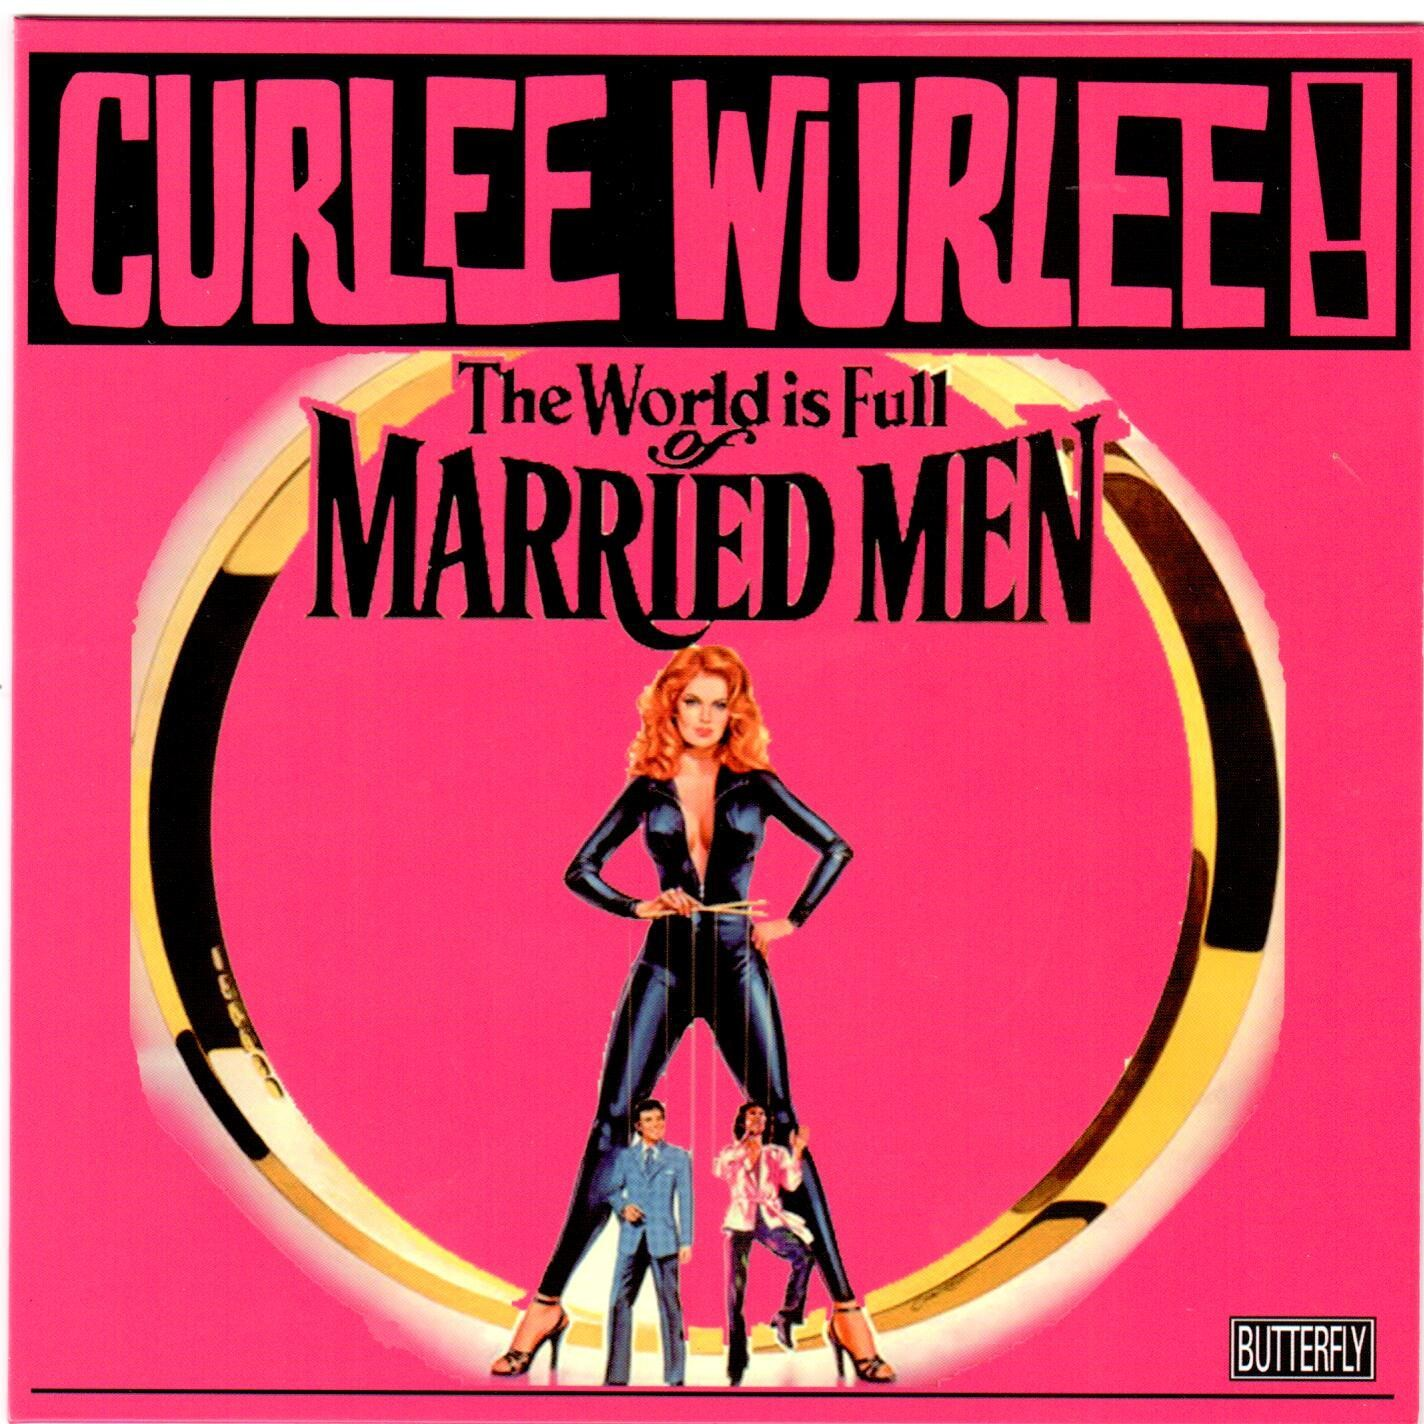 CURLEE WURLEE! - Married Men